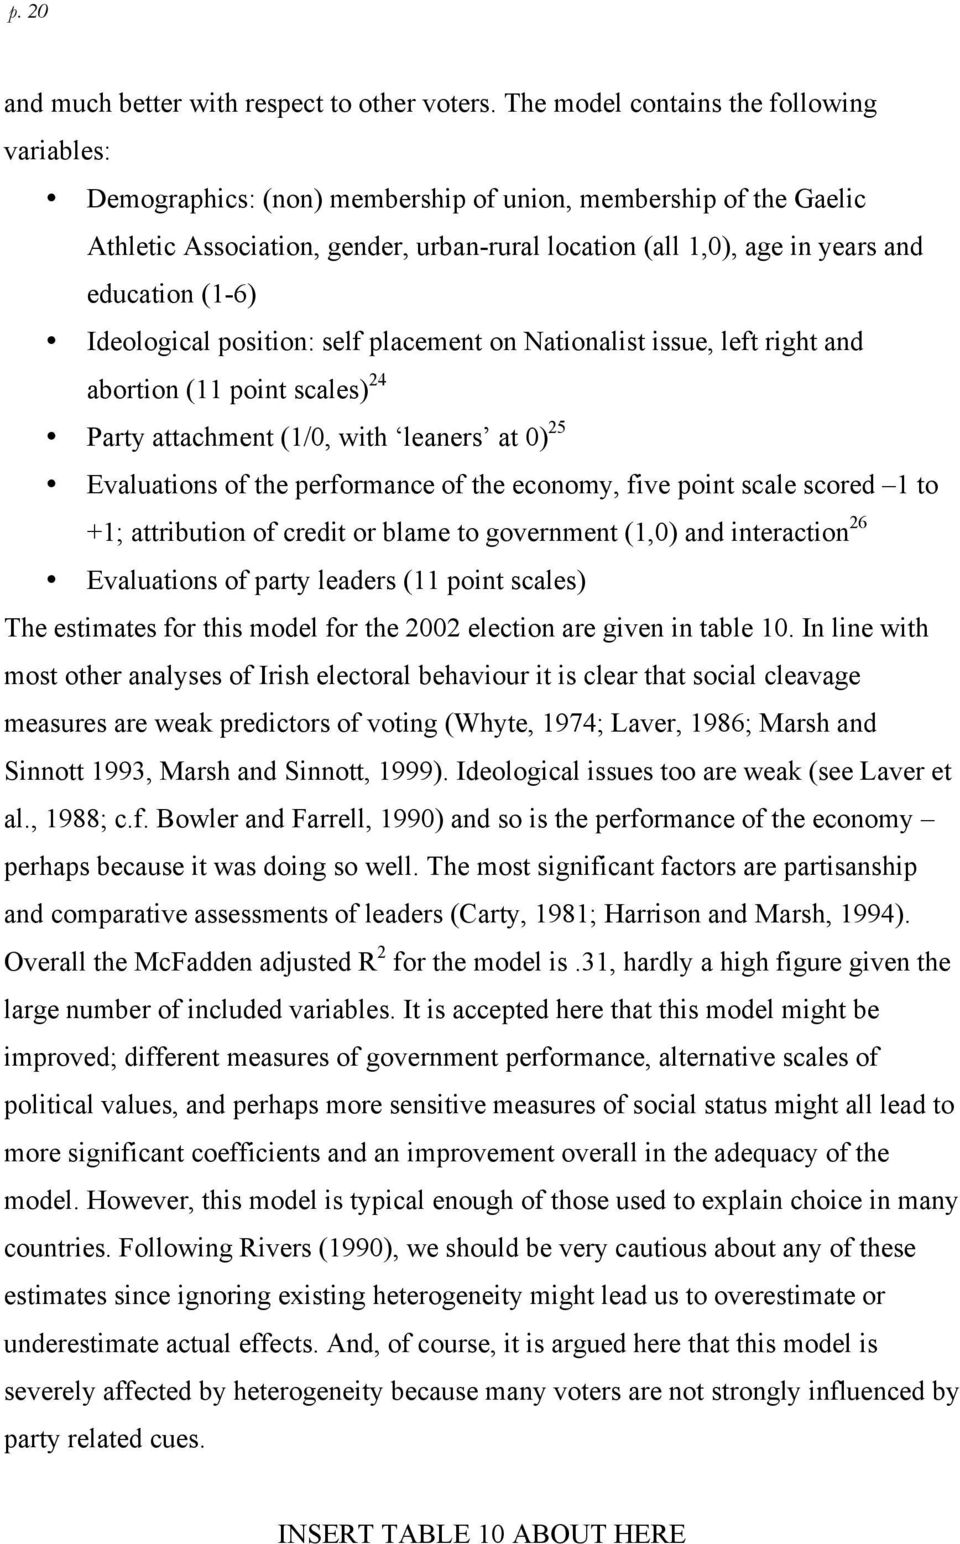 (1-6) Ideological position: self placement on Nationalist issue, left right and abortion (11 point scales) 24 Party attachment (1/0, with leaners at 0) 25 Evaluations of the performance of the